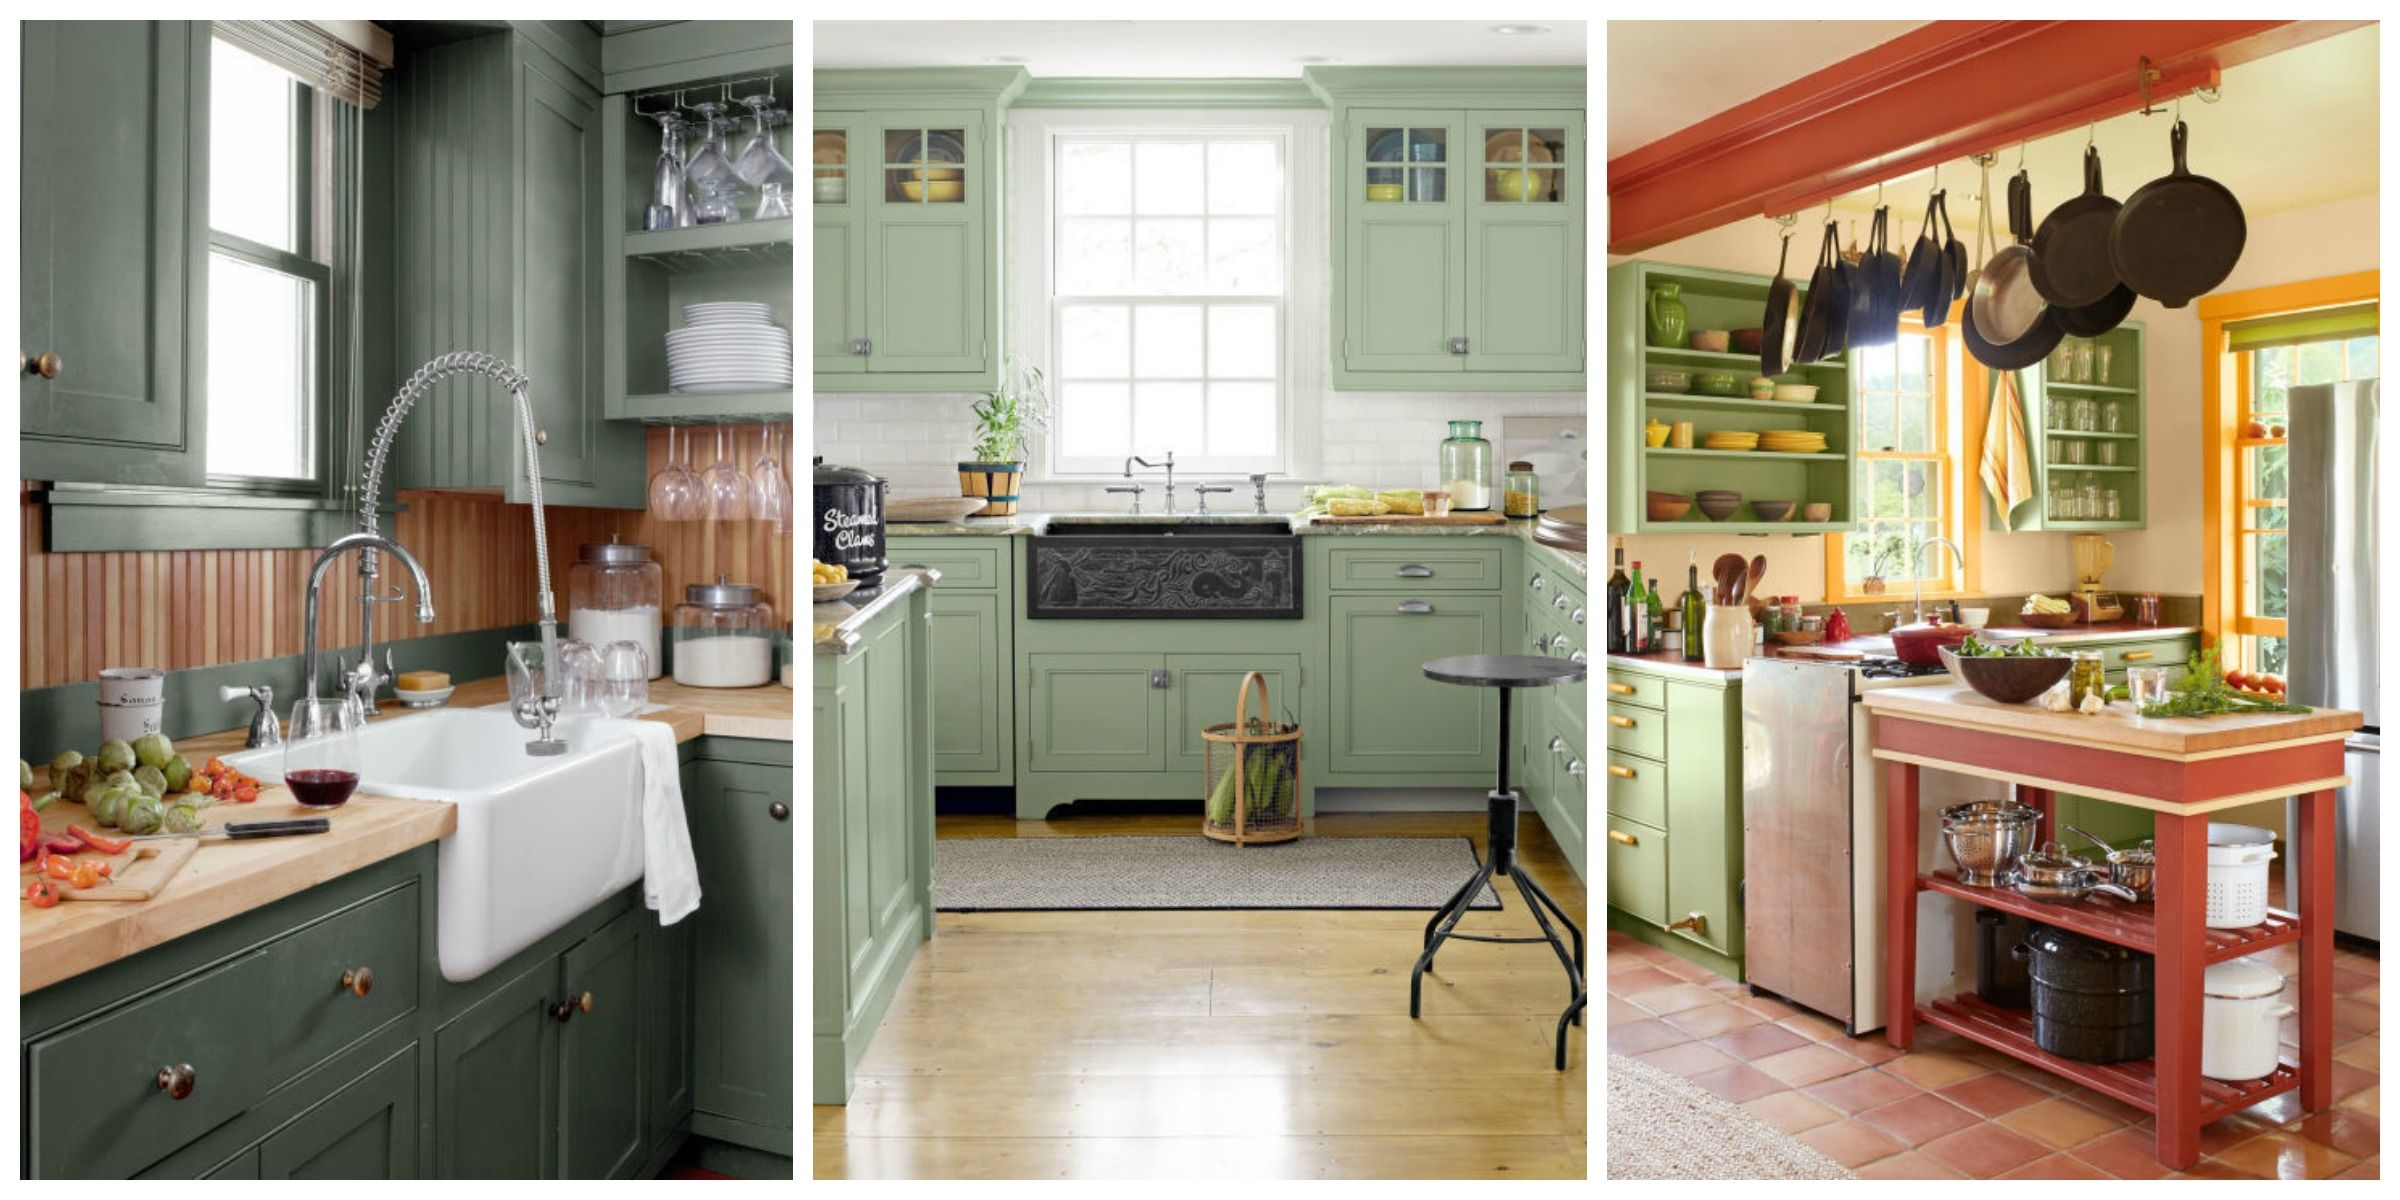 10 Green Kitchen Ideas - Best Green Paint Colors for Kitchens on grey colored kitchen cabinets, kitchen with gray floors, white kitchen cabinets, kitchen wall color schemes, kitchen backsplashes with grey cabinets,